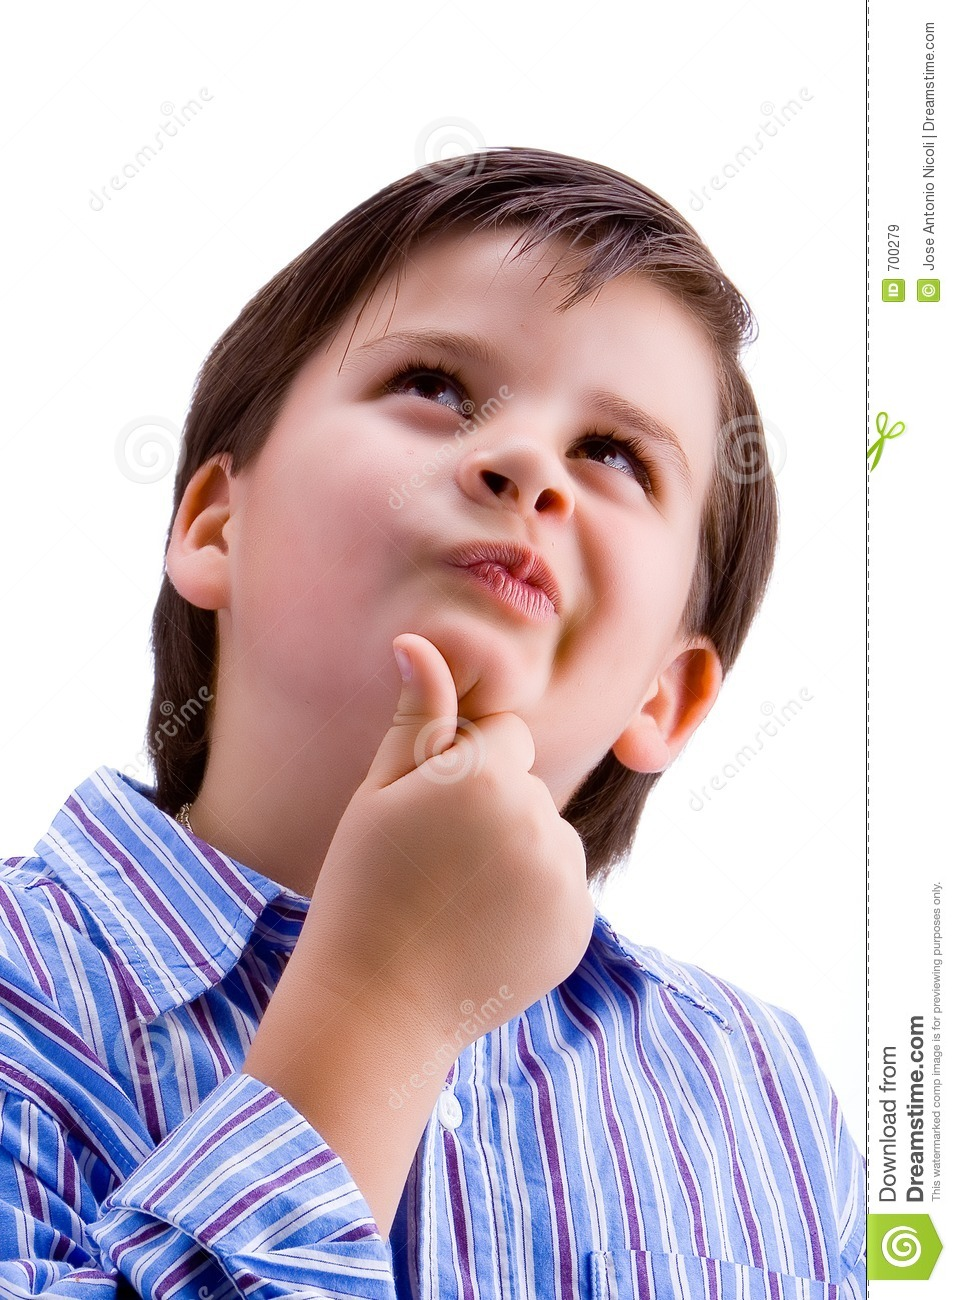 Kid Thinking Royalty Free Stock Images - Image: 700279